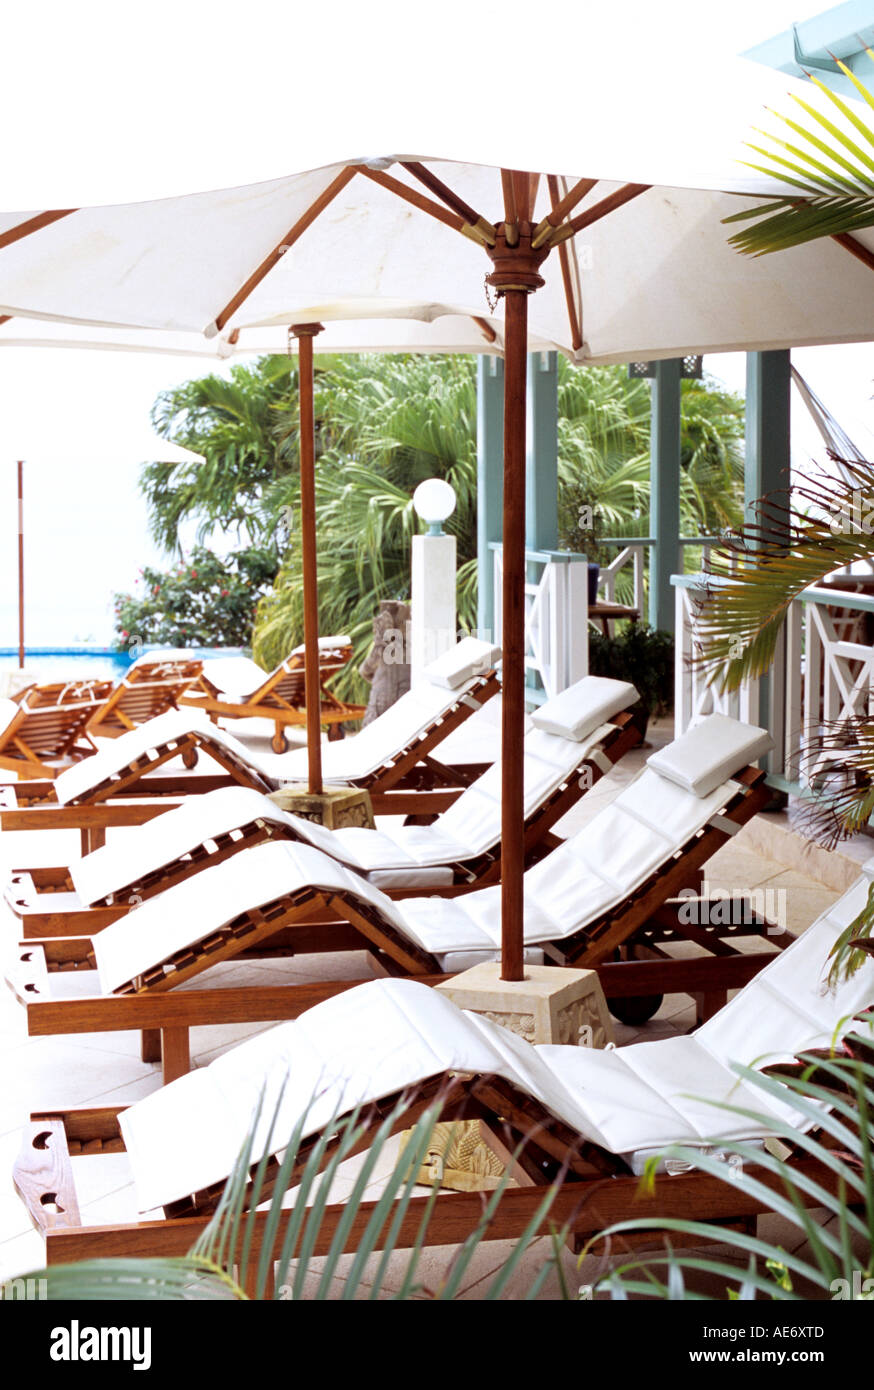 Row of sun loungers with white cushions - Stock Image